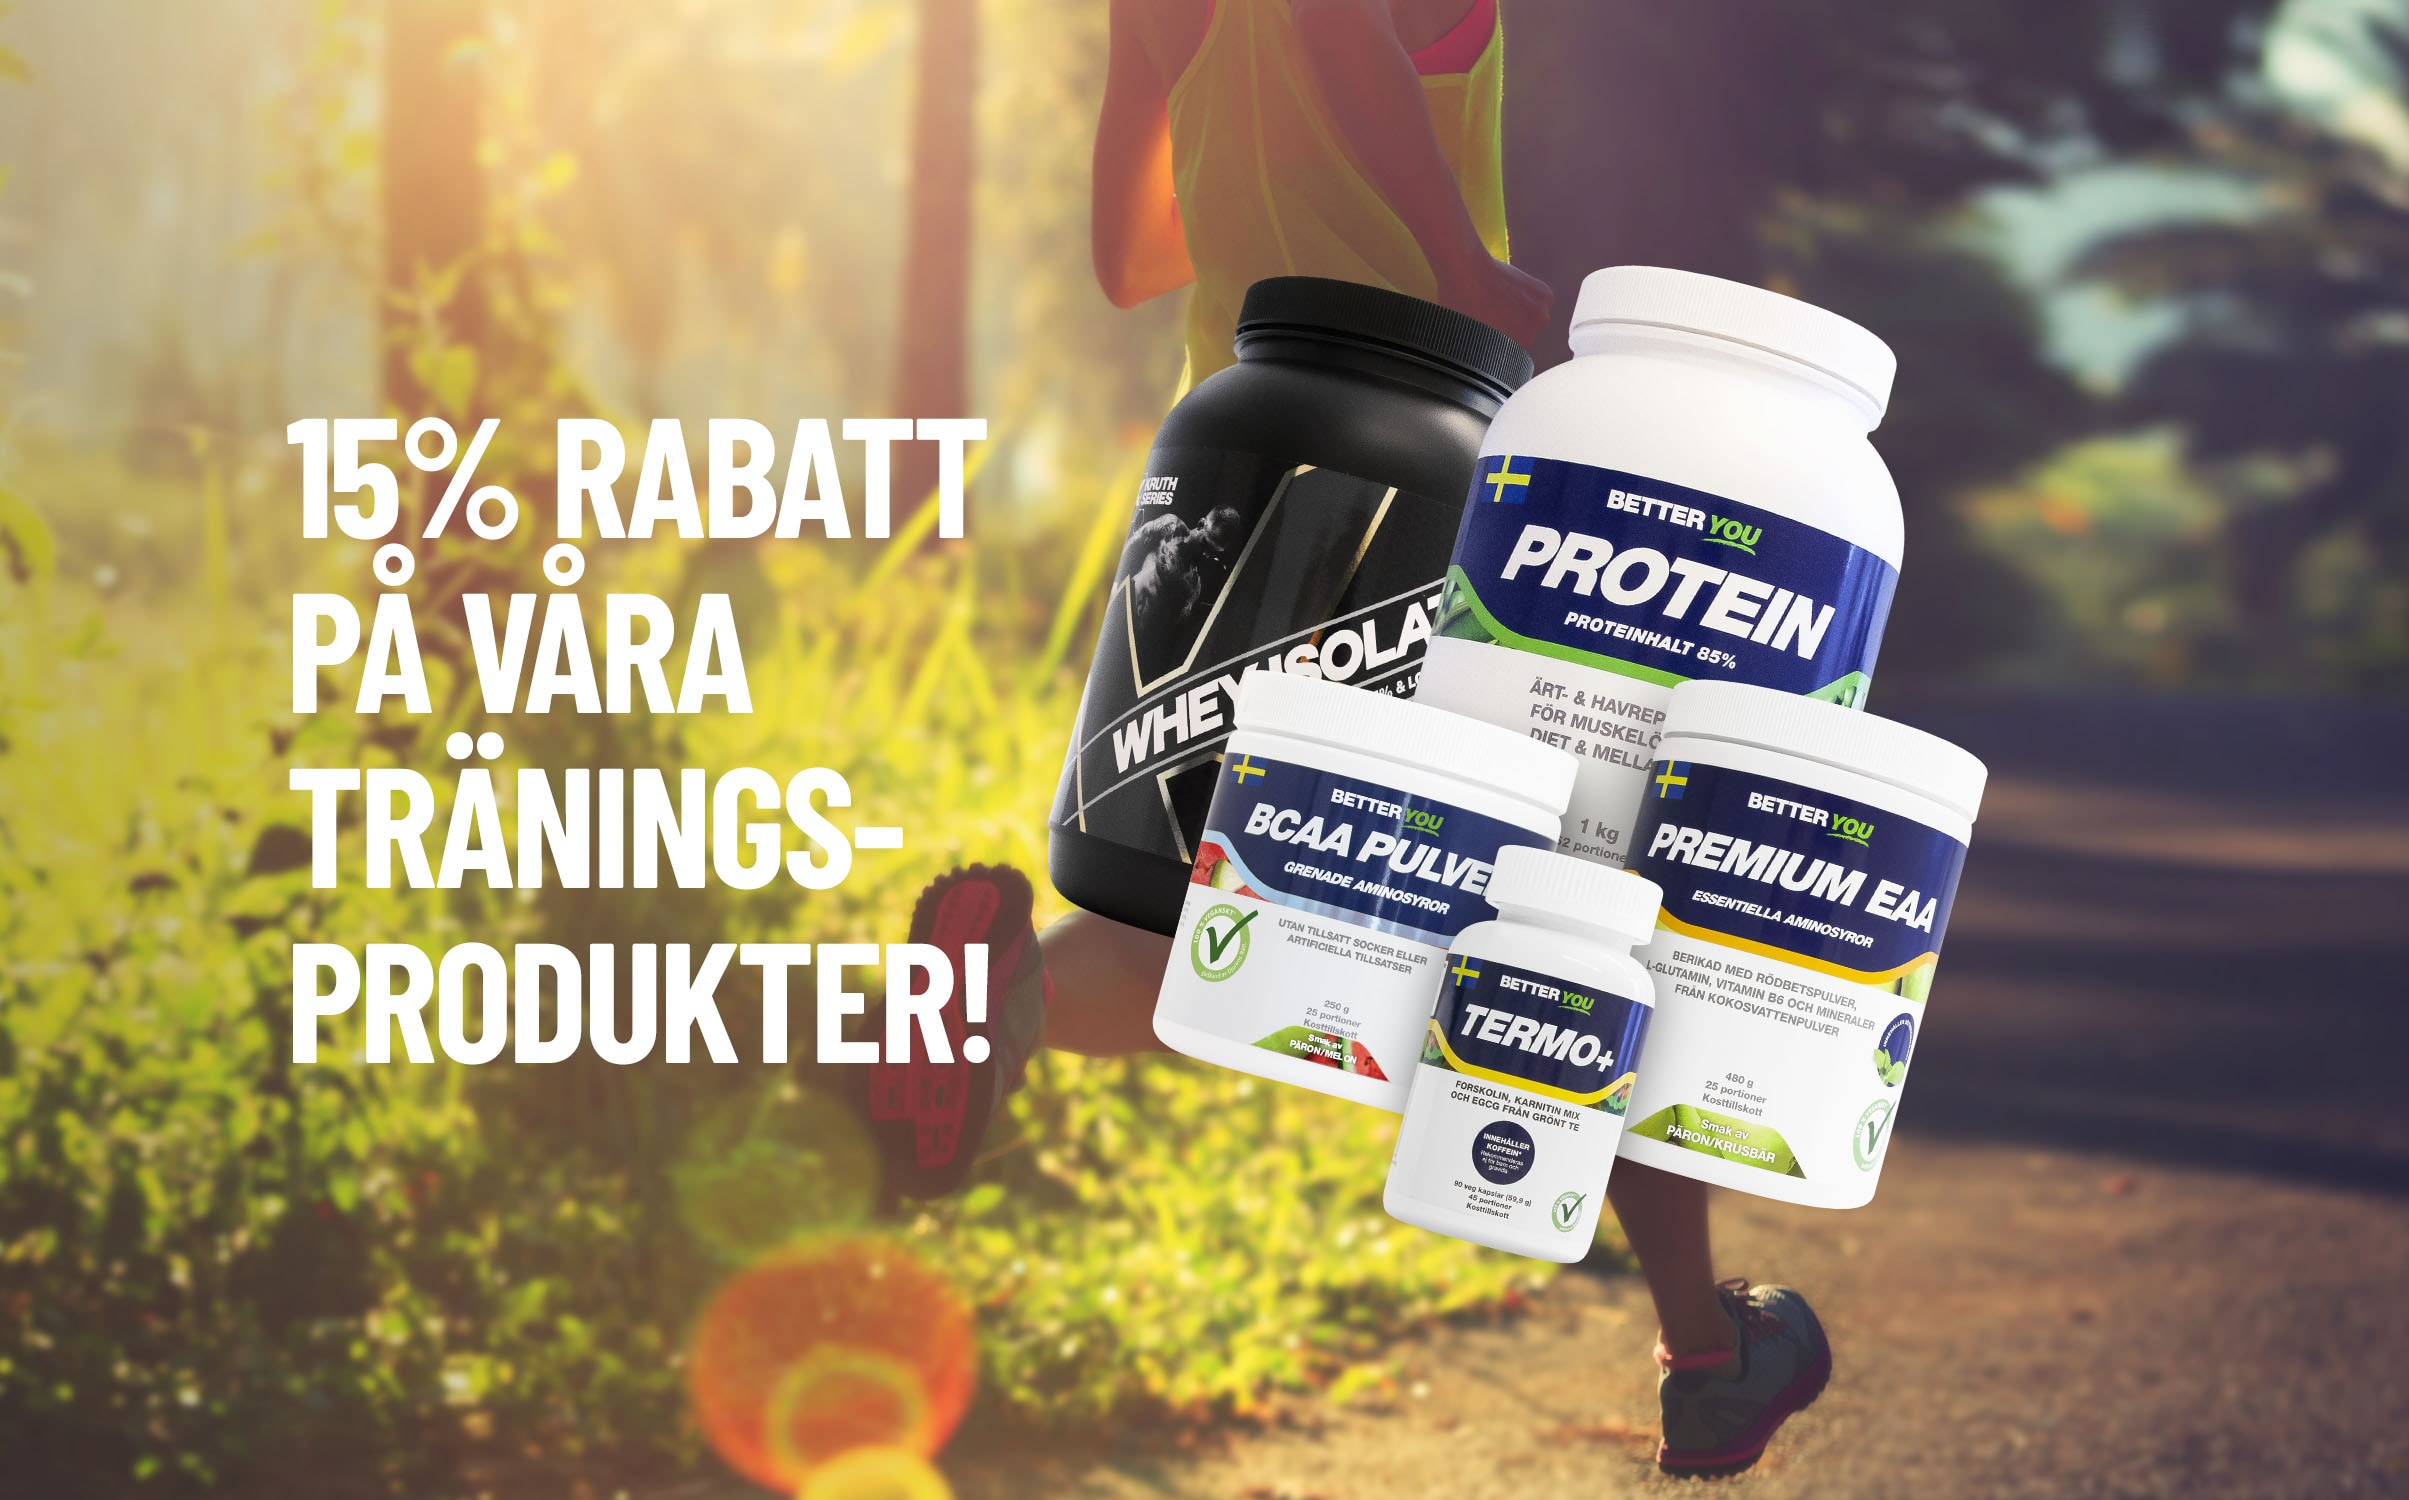 https://www.betteryou.se/pub_docs/files/Custom_Item_Images/Stora_snurr_1_traningsprodukter22.jpg